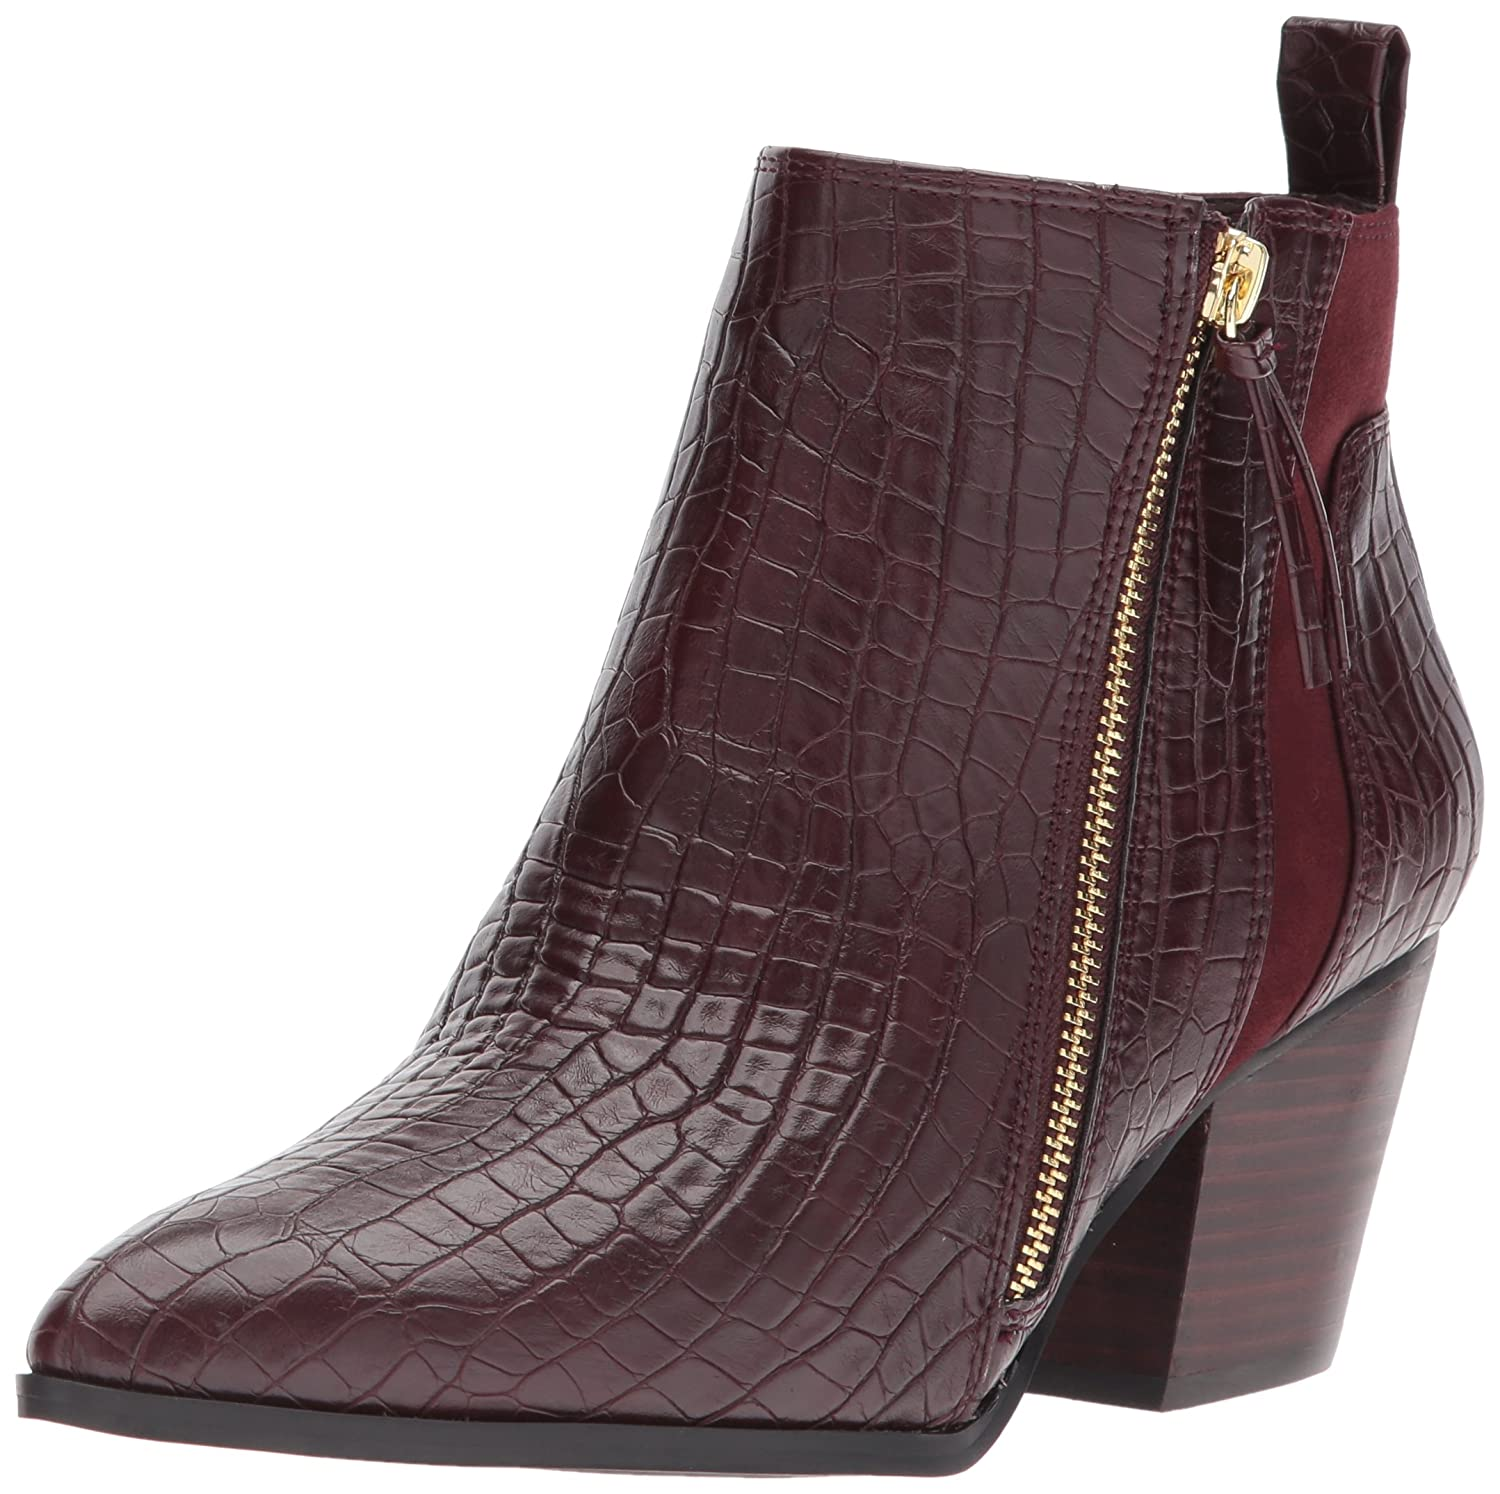 Bella Vita Women's Everest Ii Ankle Bootie B073NQ5S3N 6.5 2W US|Burgundy Croco